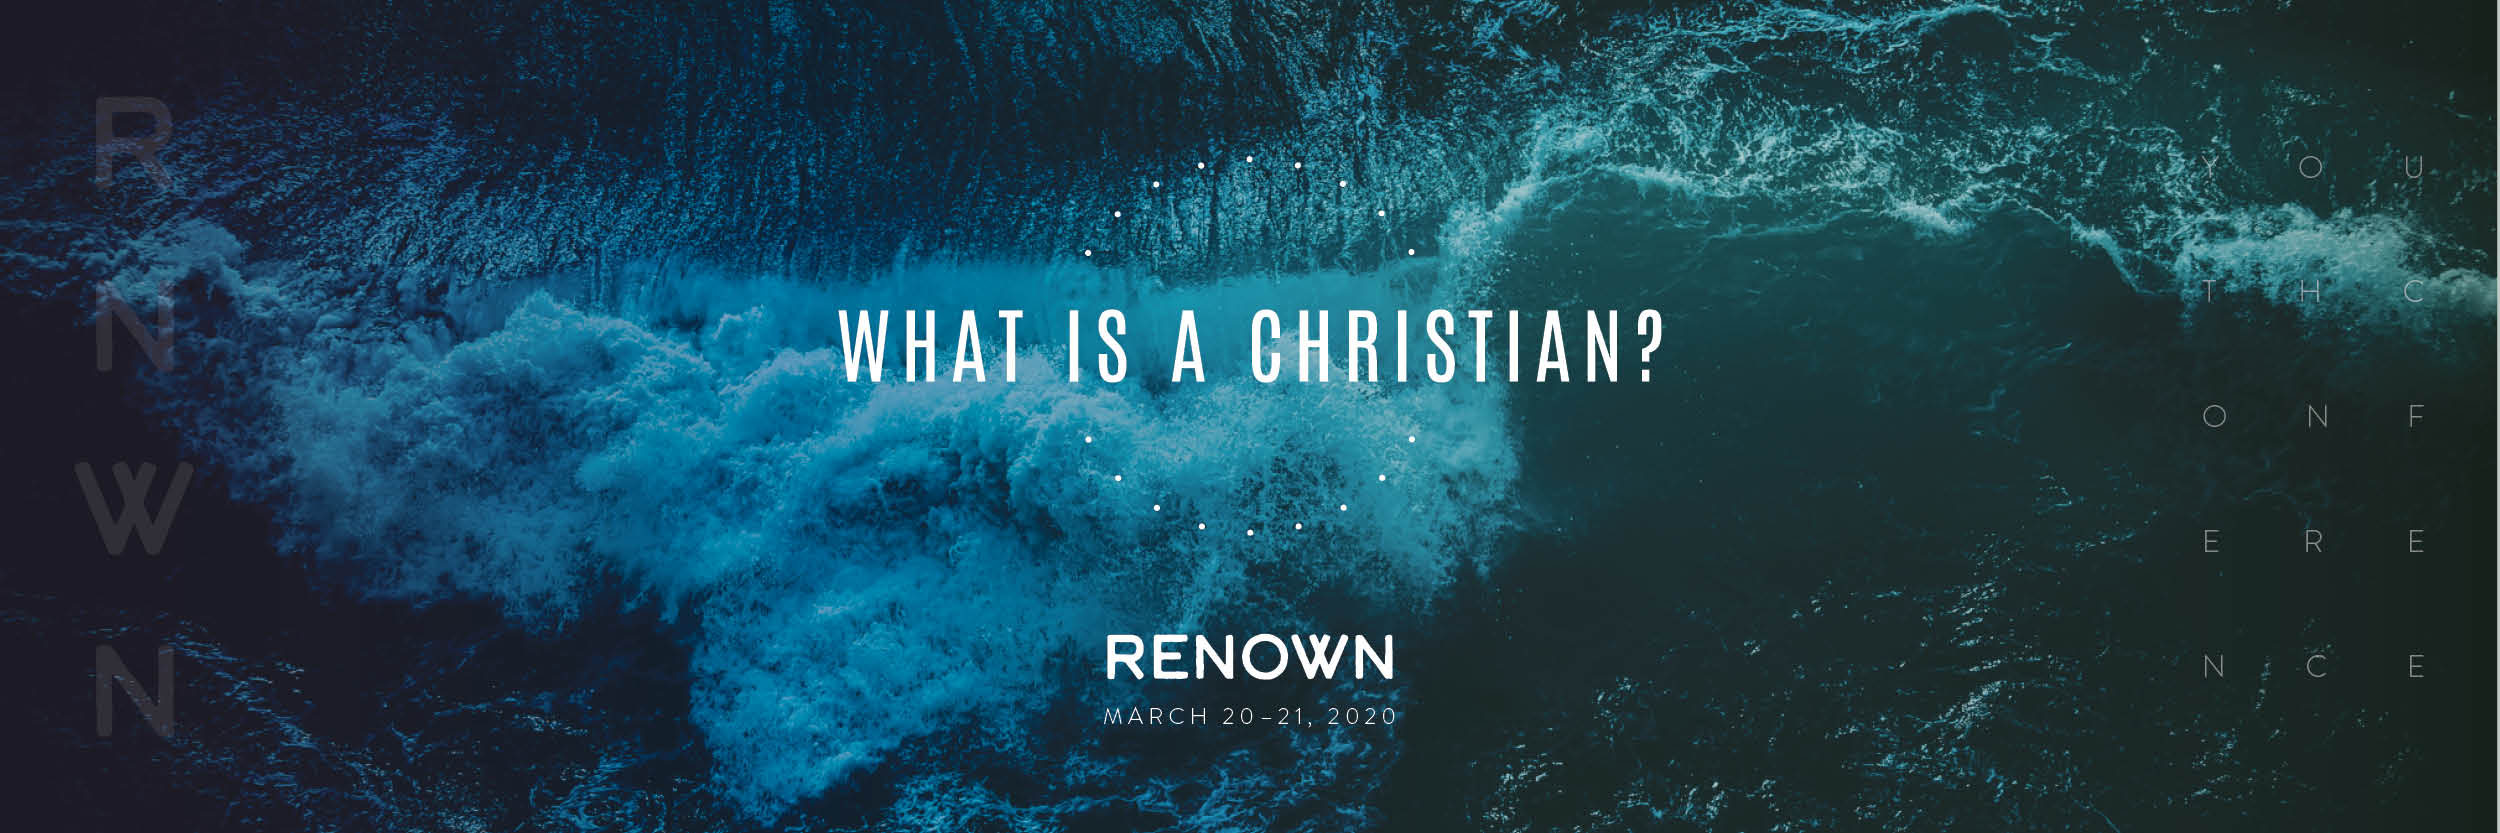 Banner advertisement for Renown Youth Conference